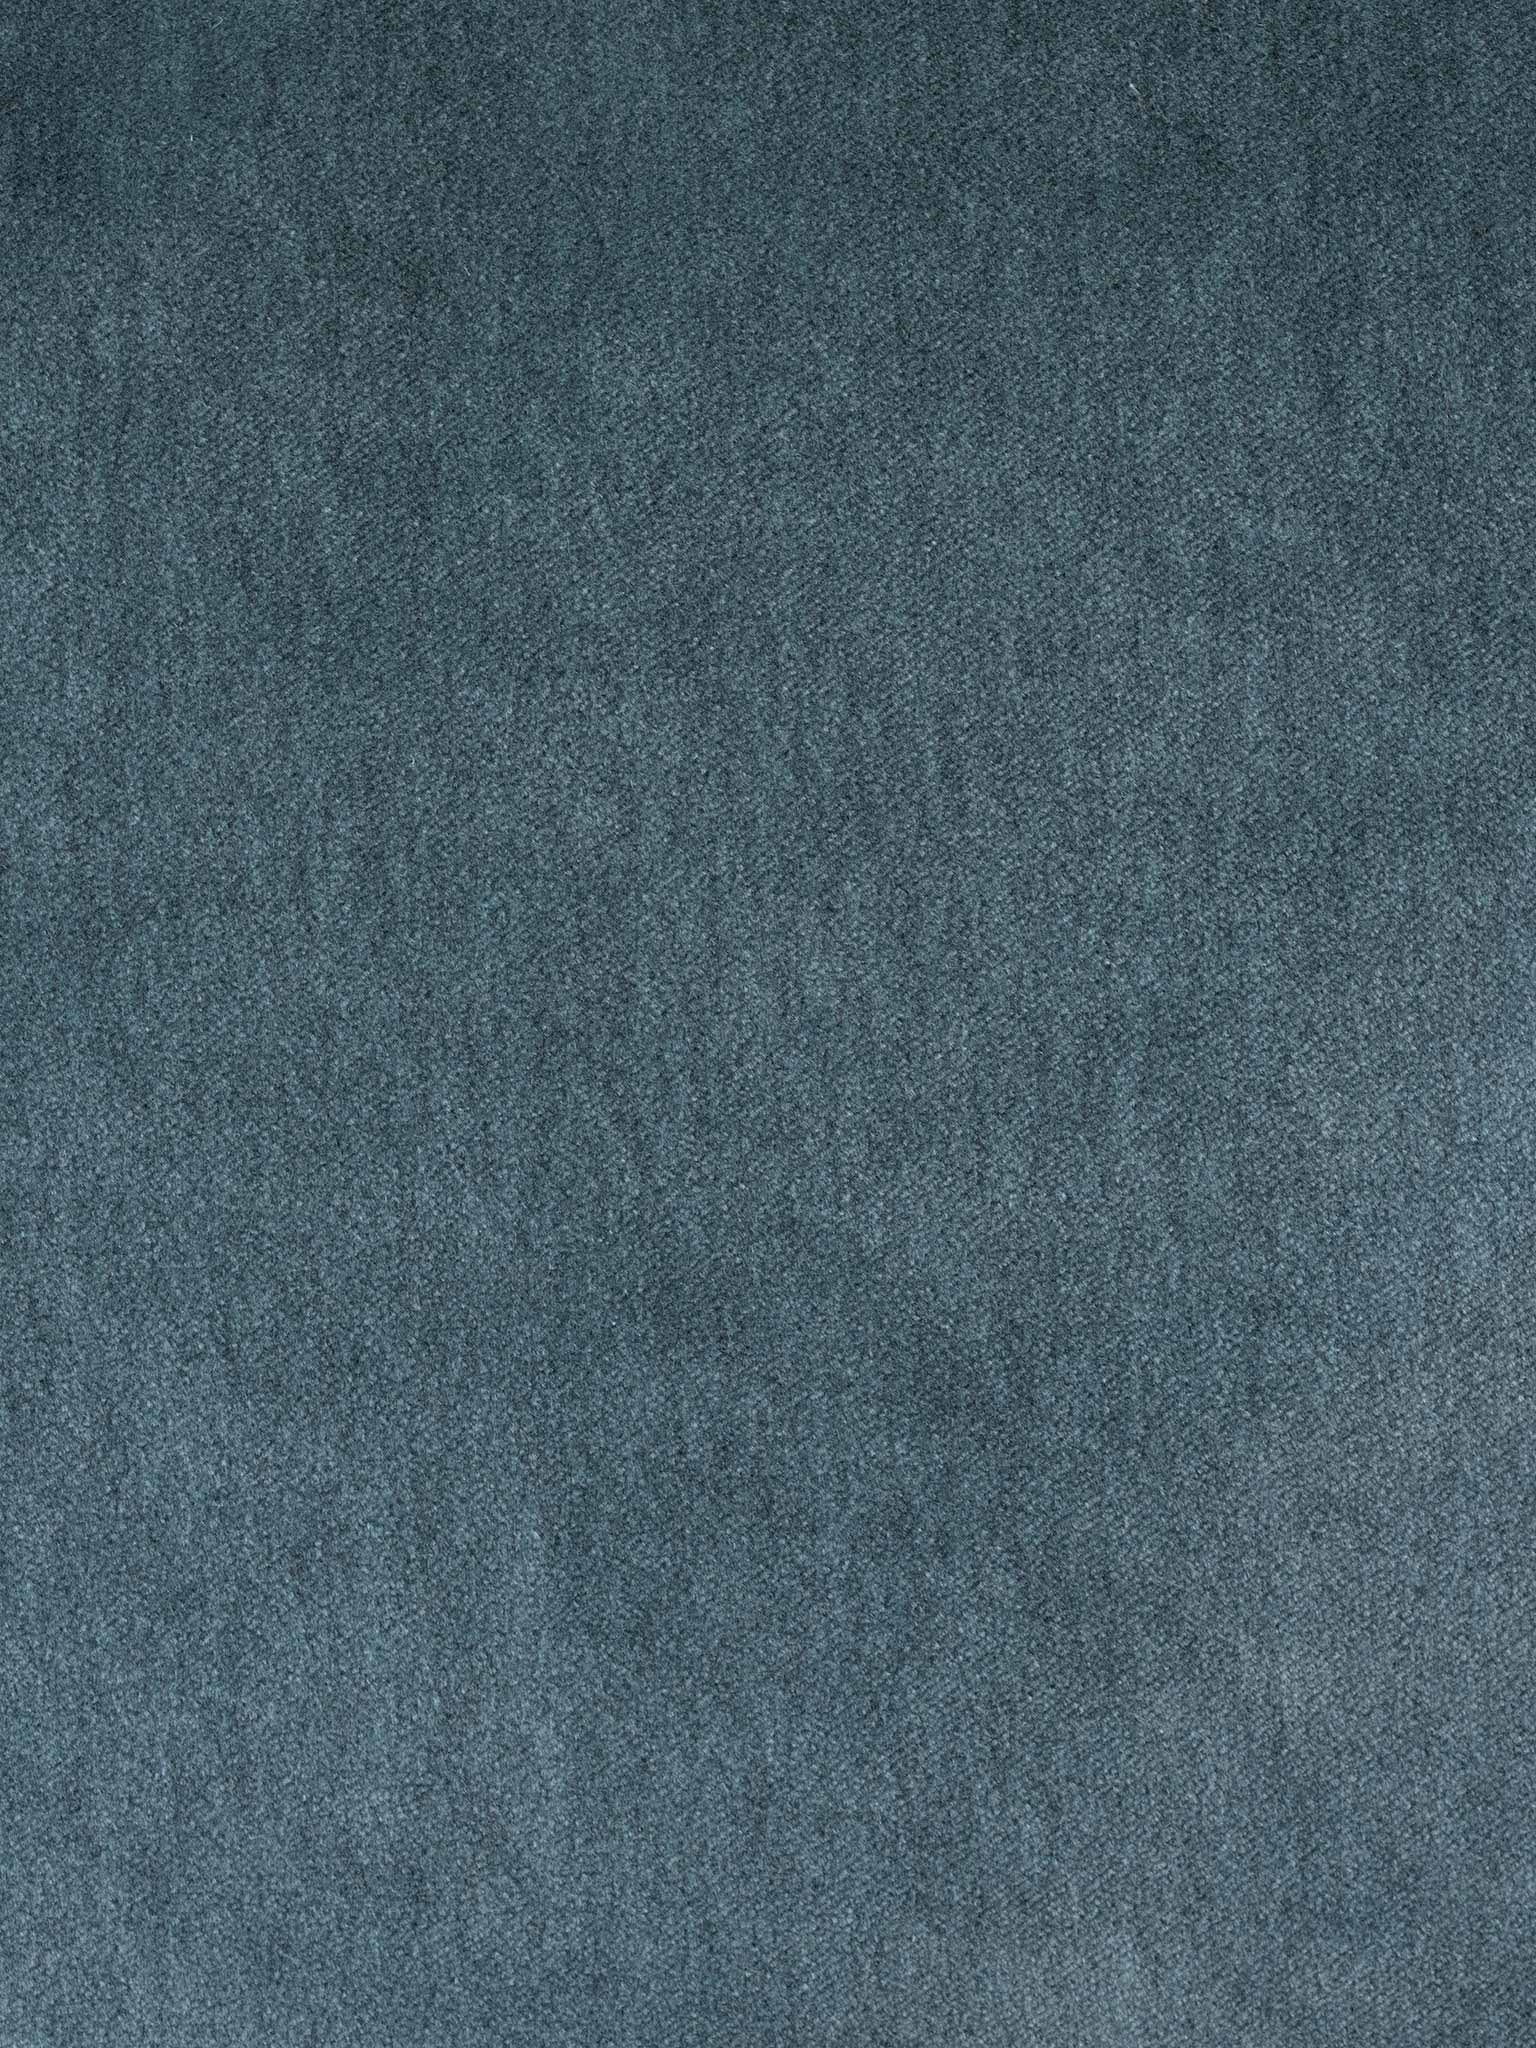 Legato In Blue Grey Fortuny